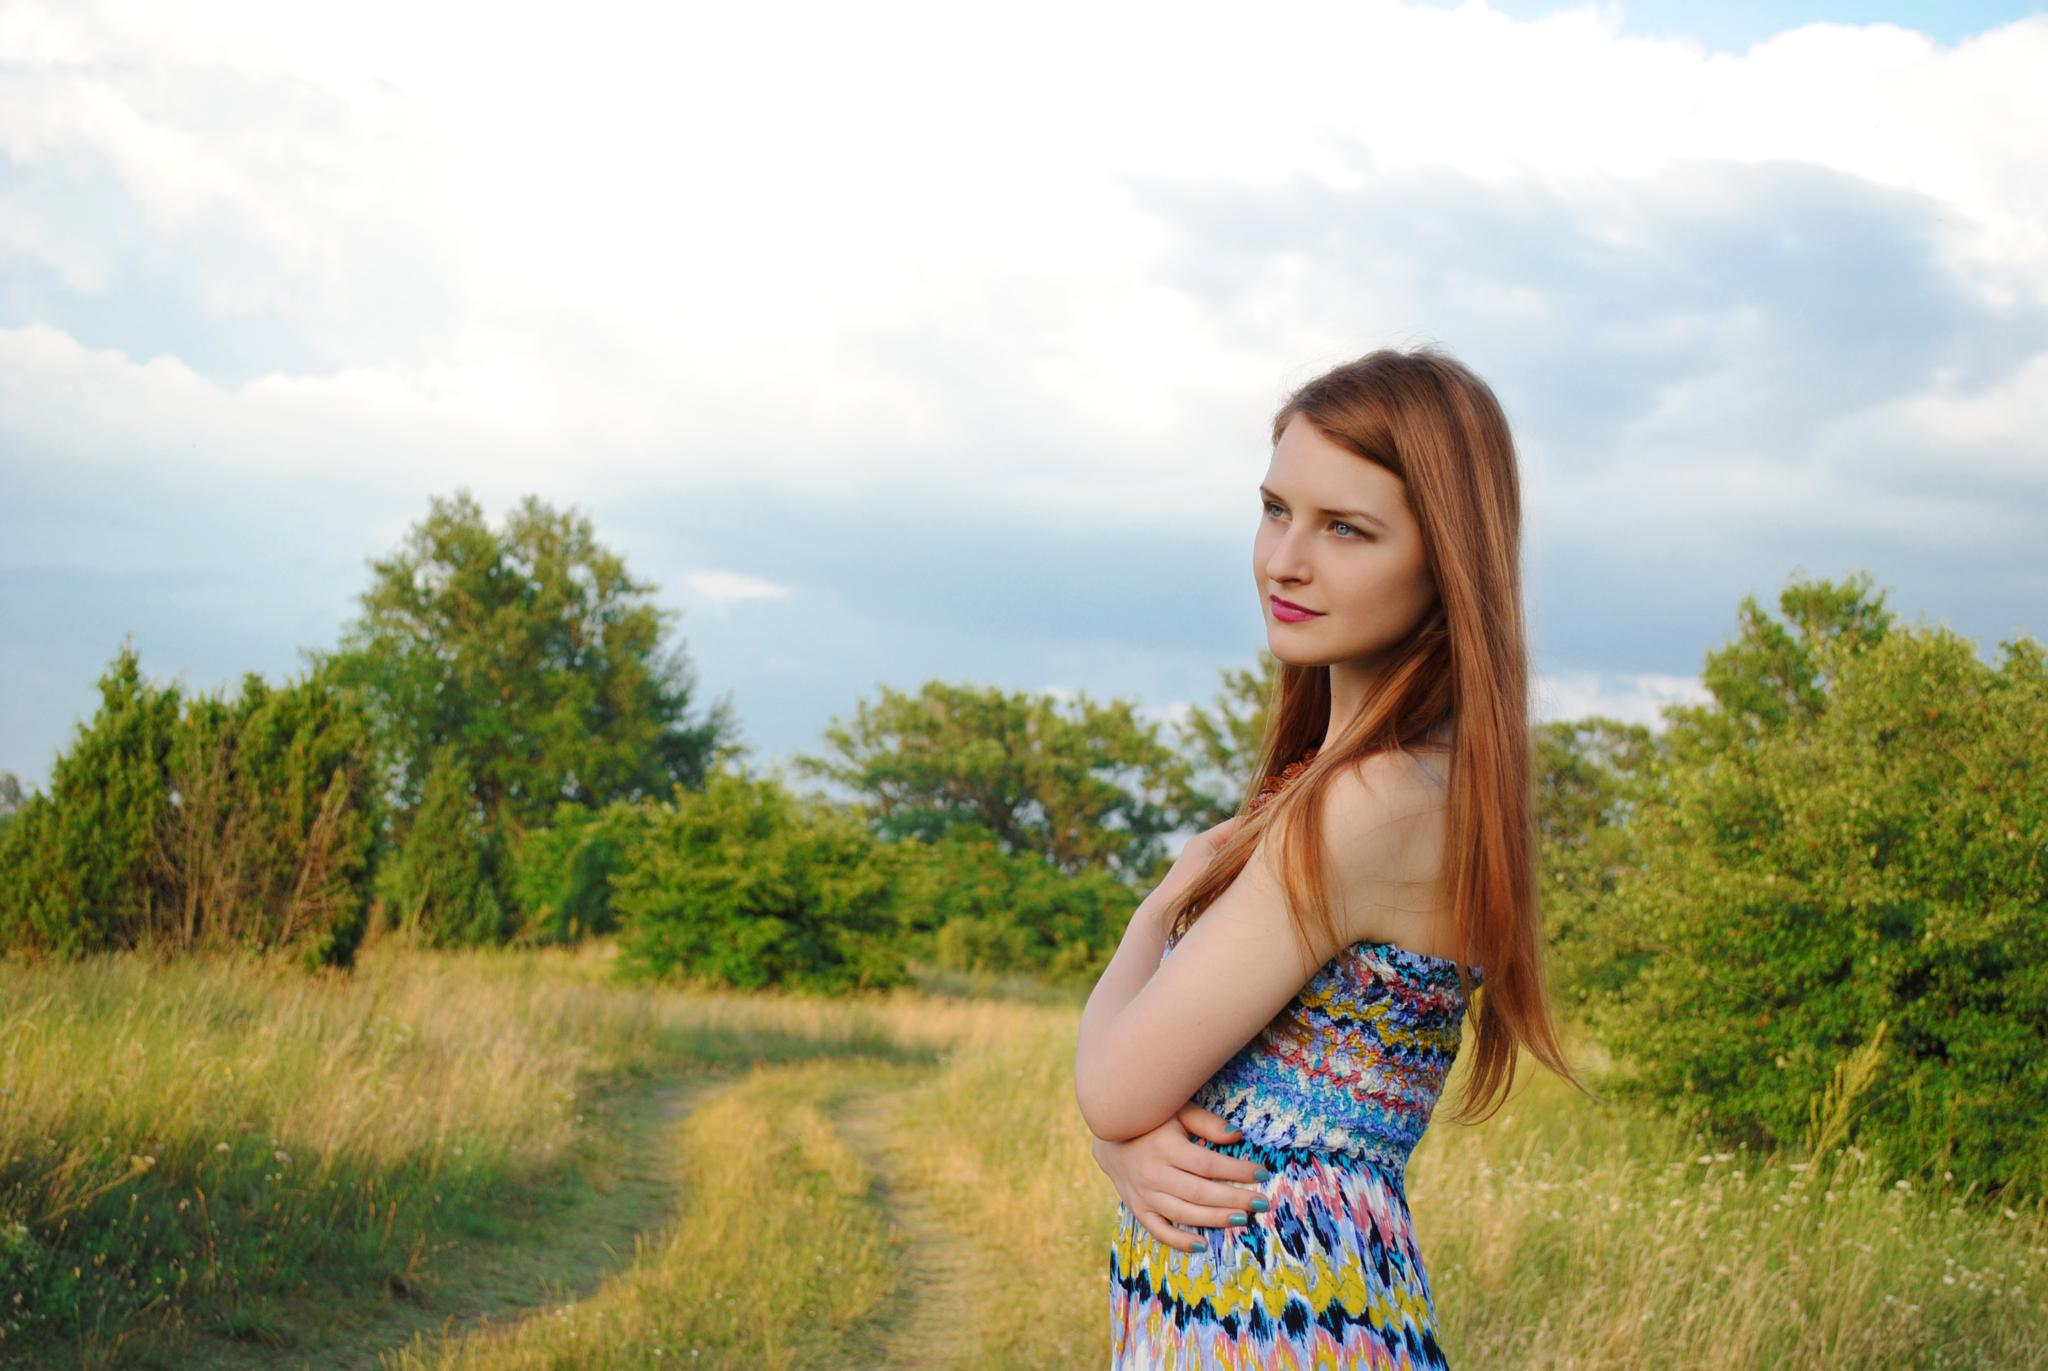 Photo in Portrait #model #girl #young #female #lady #beauty #beautiful #redhead #ginger #red #hair #makeup #make up #blue #eyes #pink #lips #perfect #skin #green #yellow #grass #woods #trees #sky #portrait #nature #face